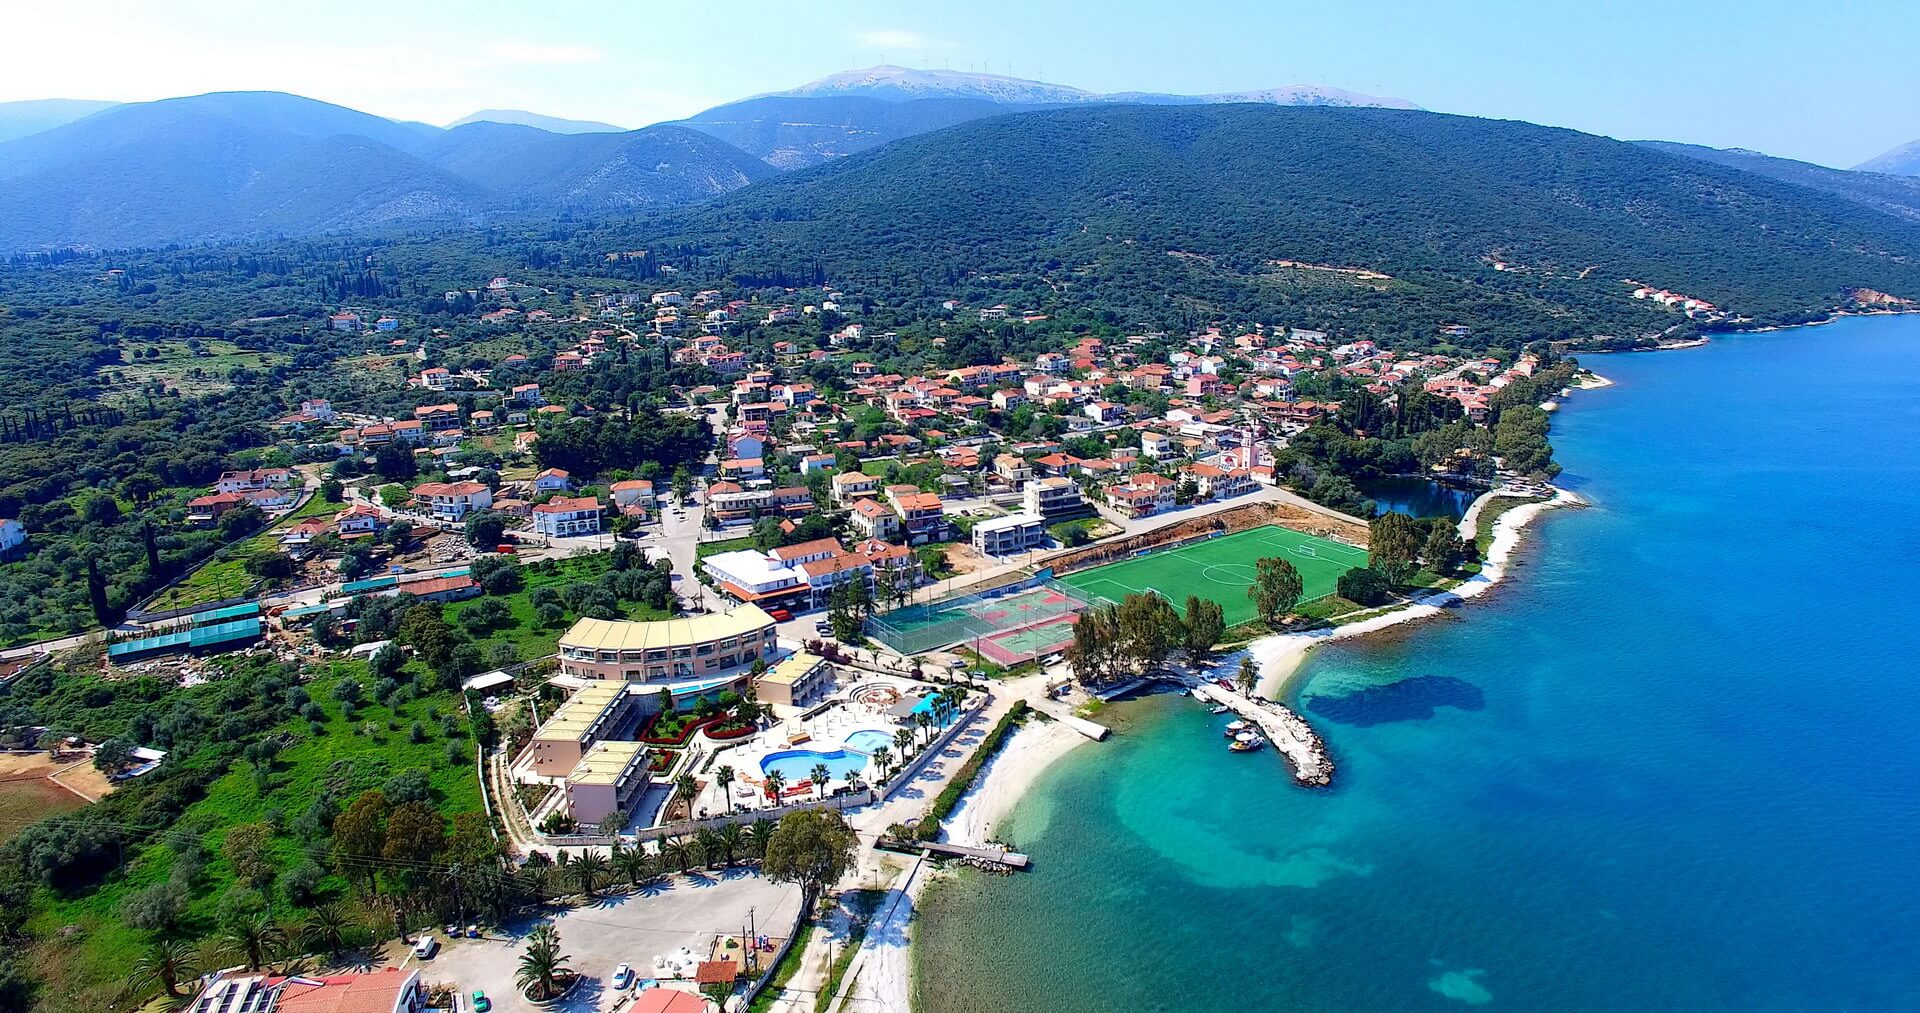 Town of Karavomylos at Sami Kefalonia